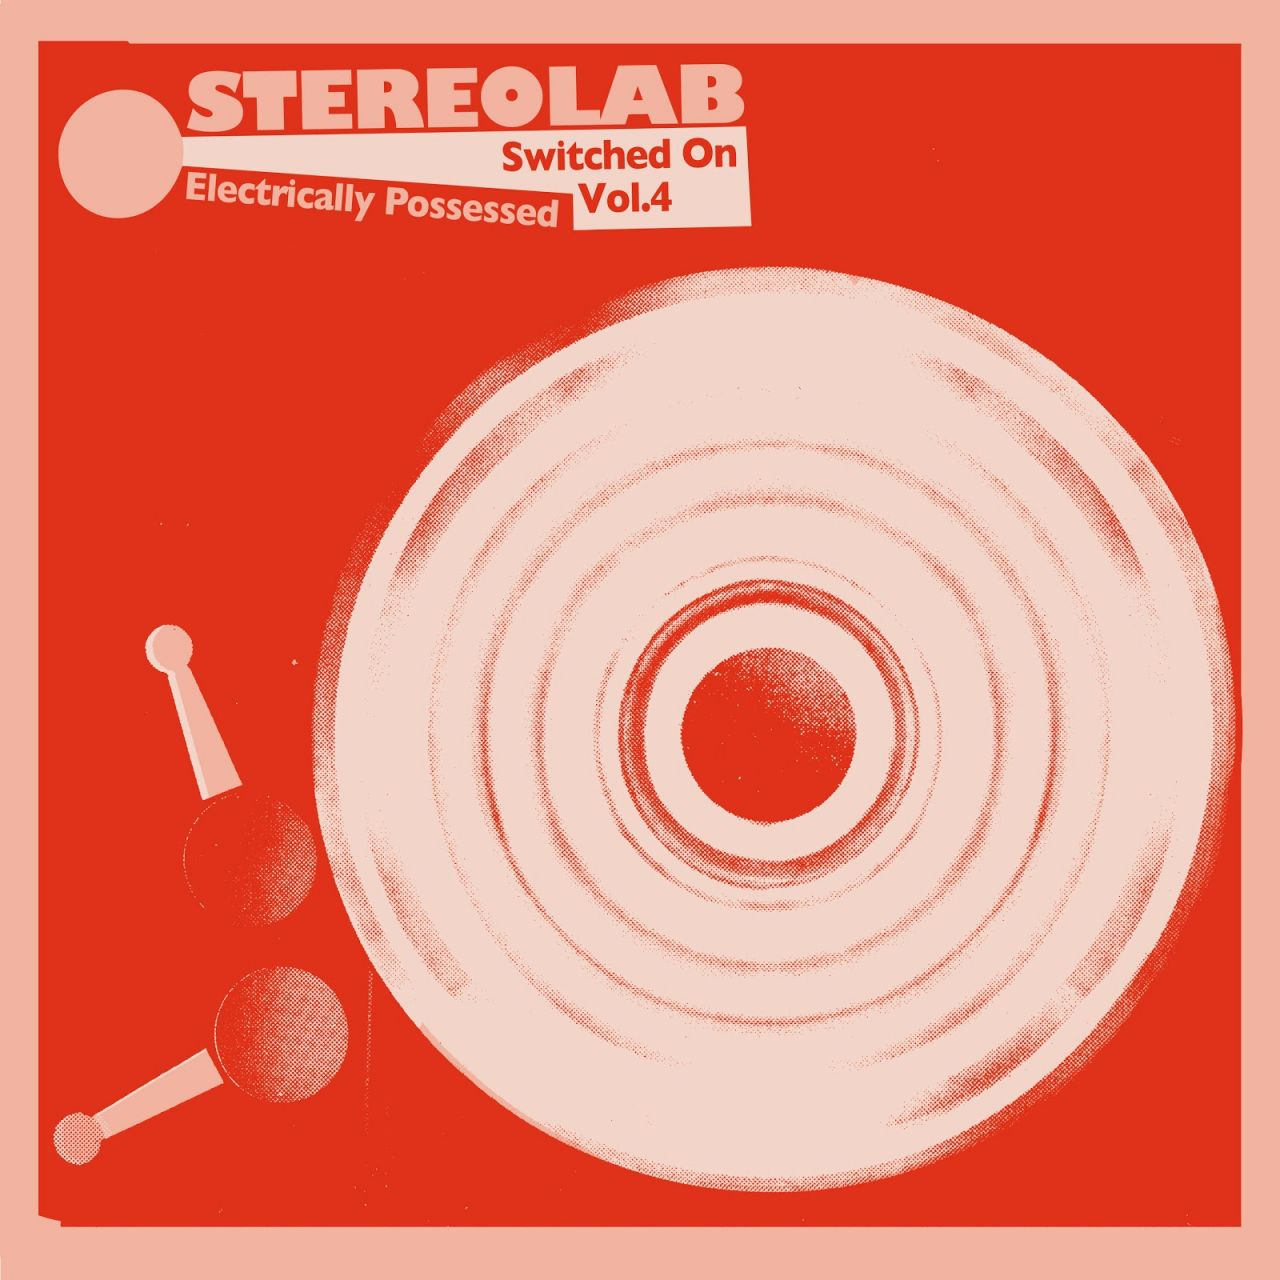 Stereolab - Electrically Possessed (Switched On Vol. 4) - 3LP